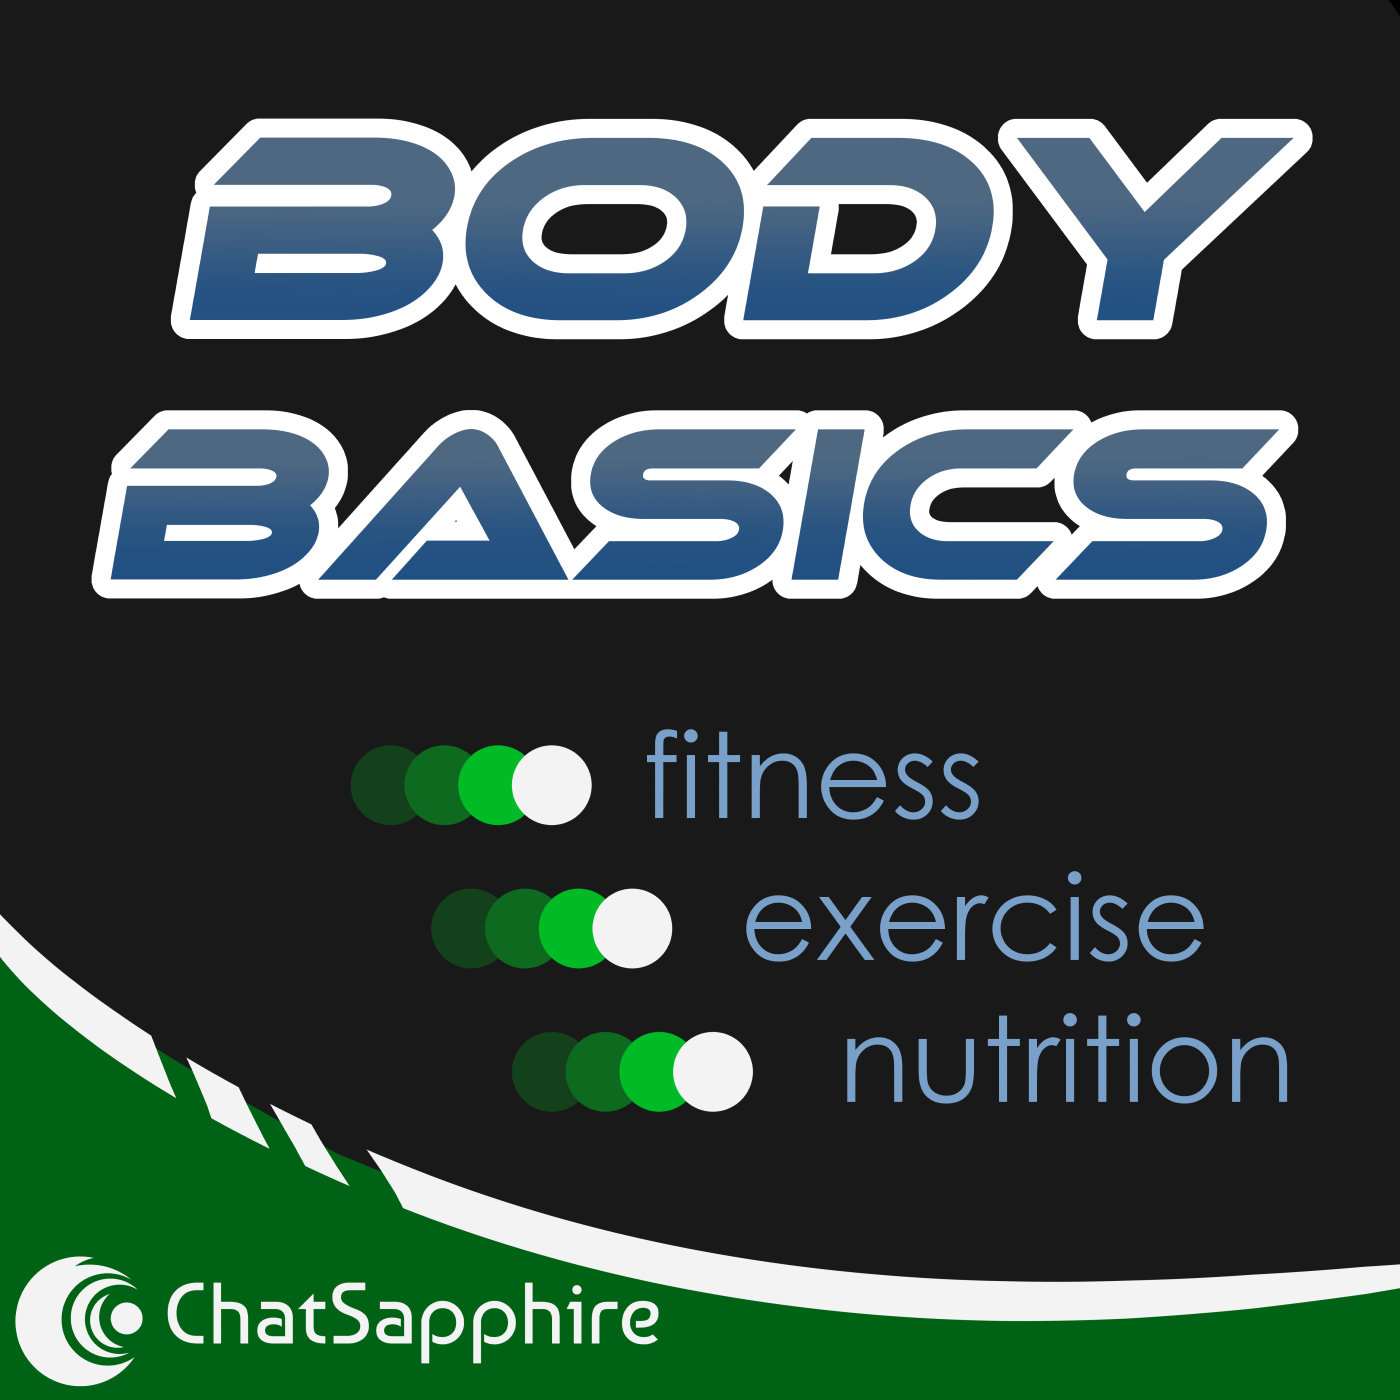 Show artwork for Body Basics by ChatSapphire